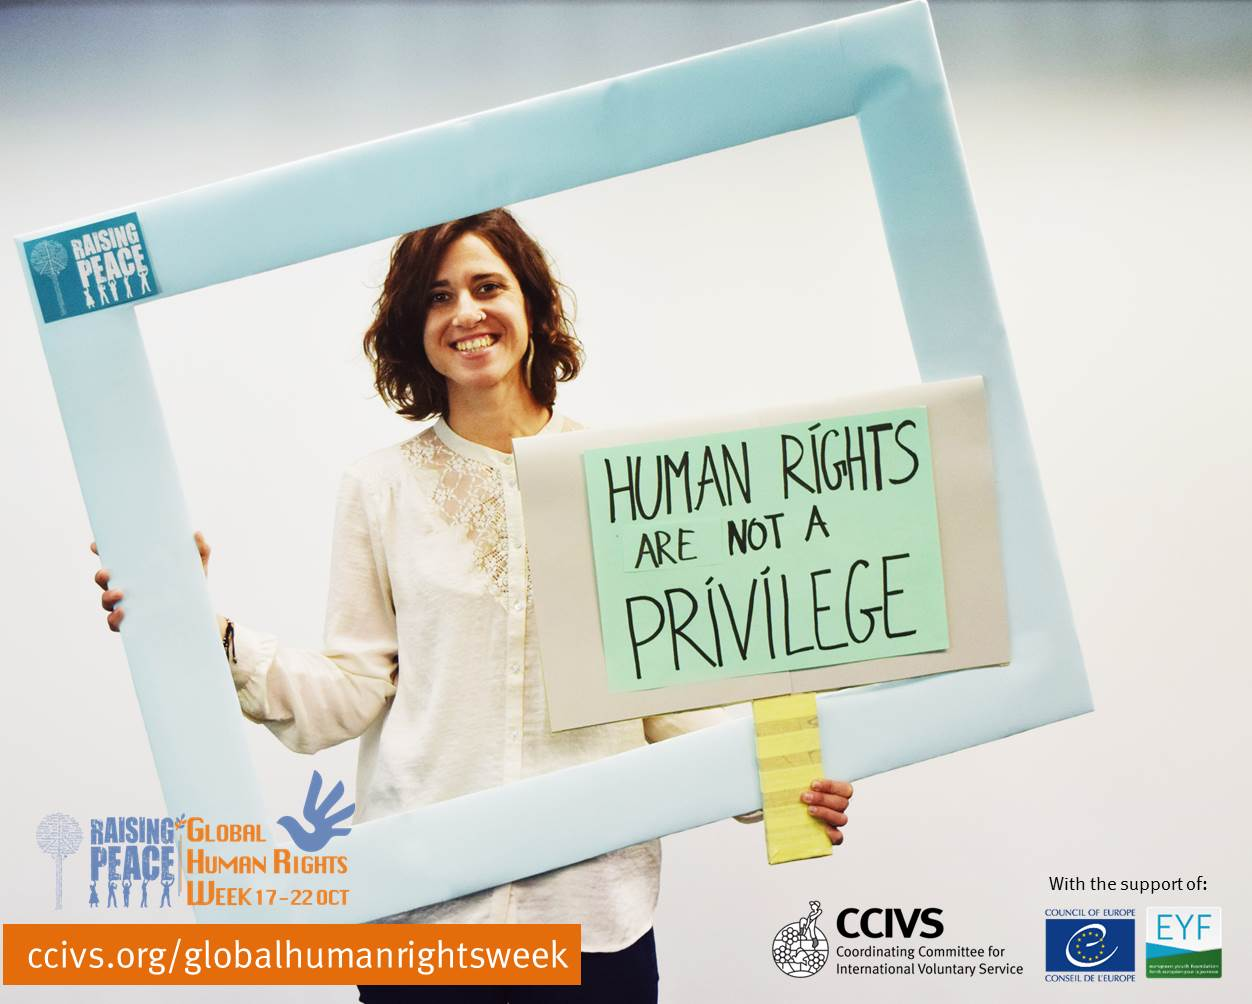 Photo by CCIVS for the campaign Raising Peace during the Human Rights Week, October 2016.